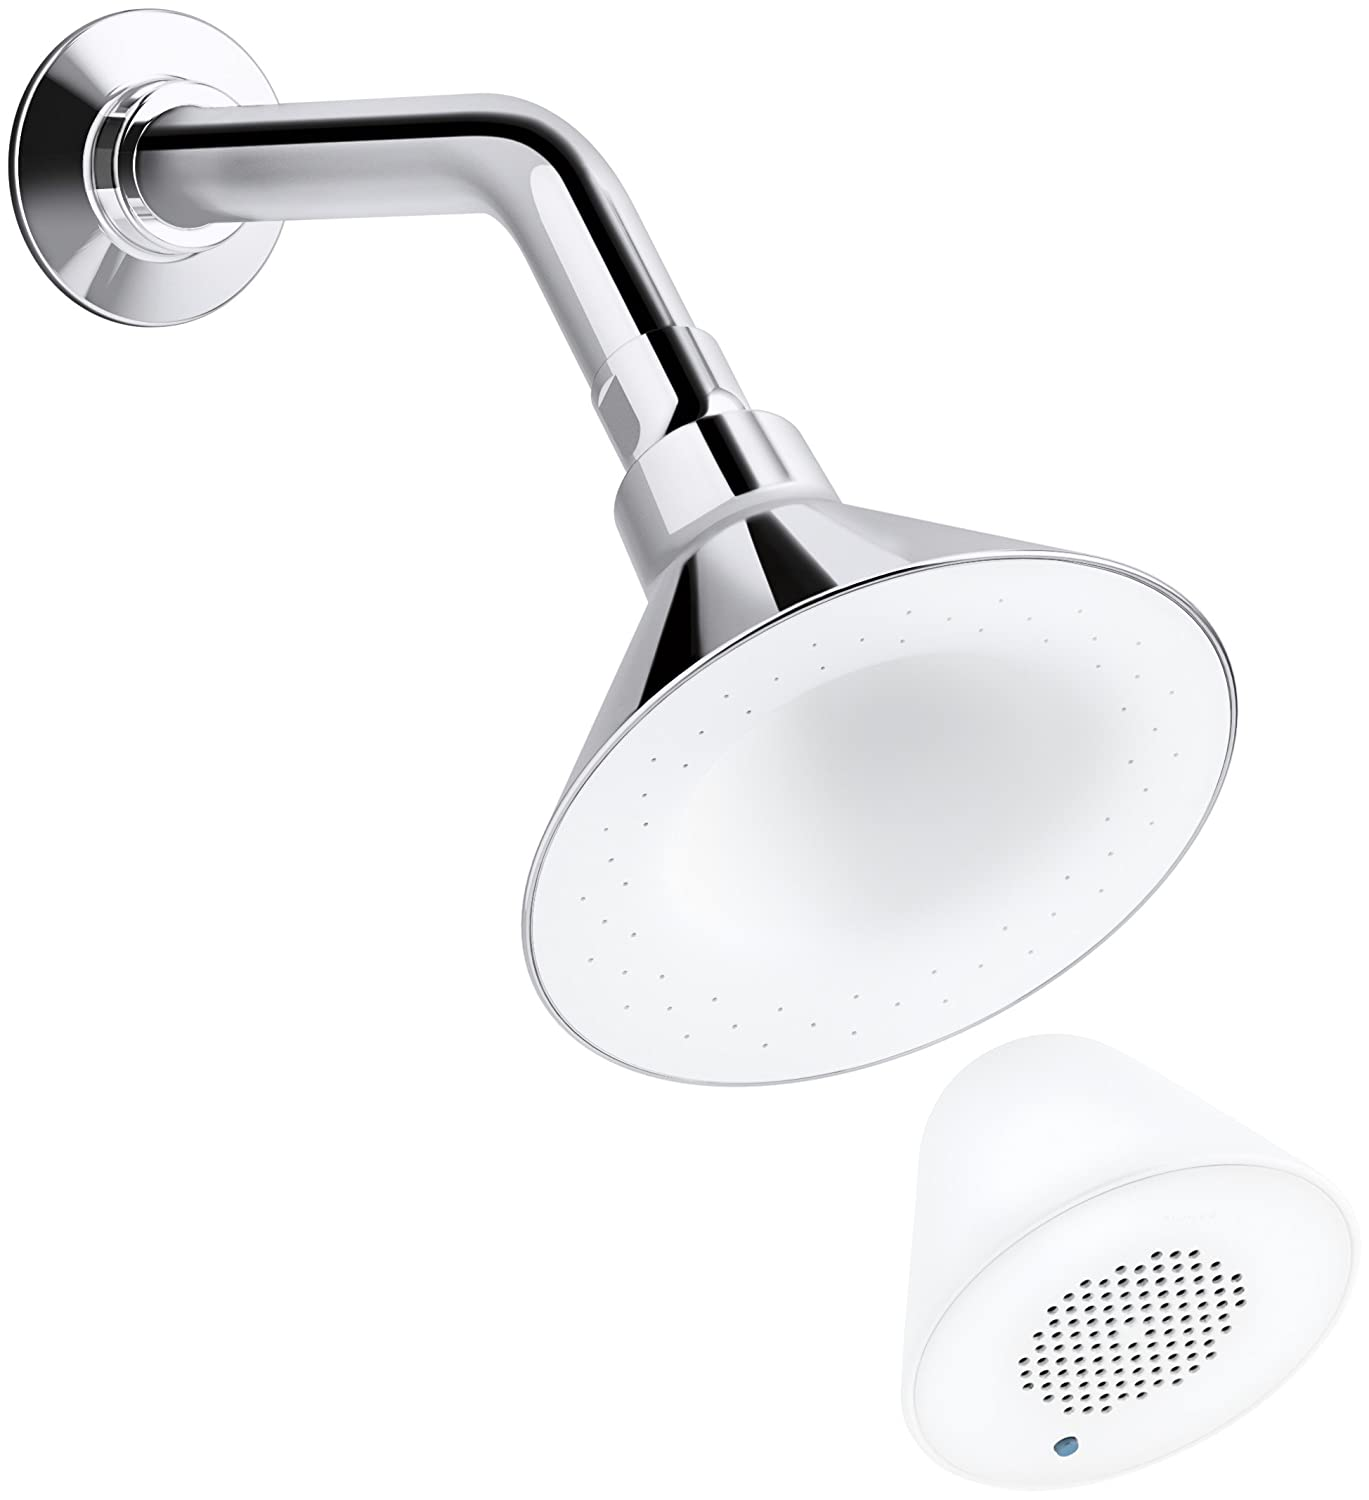 KOHLER K-9245-CP 2.5 GPM Moxie Showerhead and Wireless Speaker ...